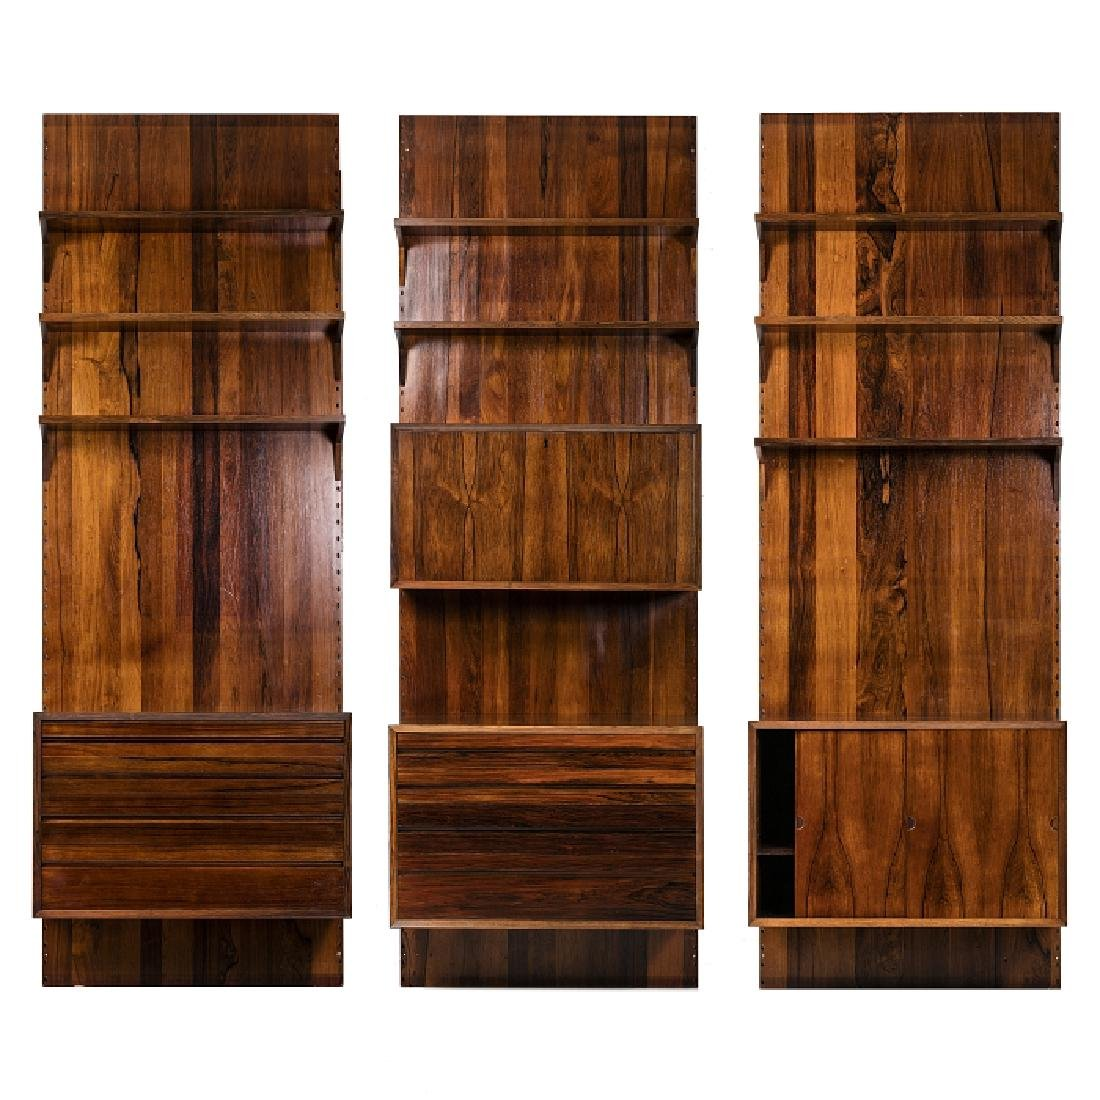 POUL CADOVIUS (1911-2011) - Modernist bookcase with